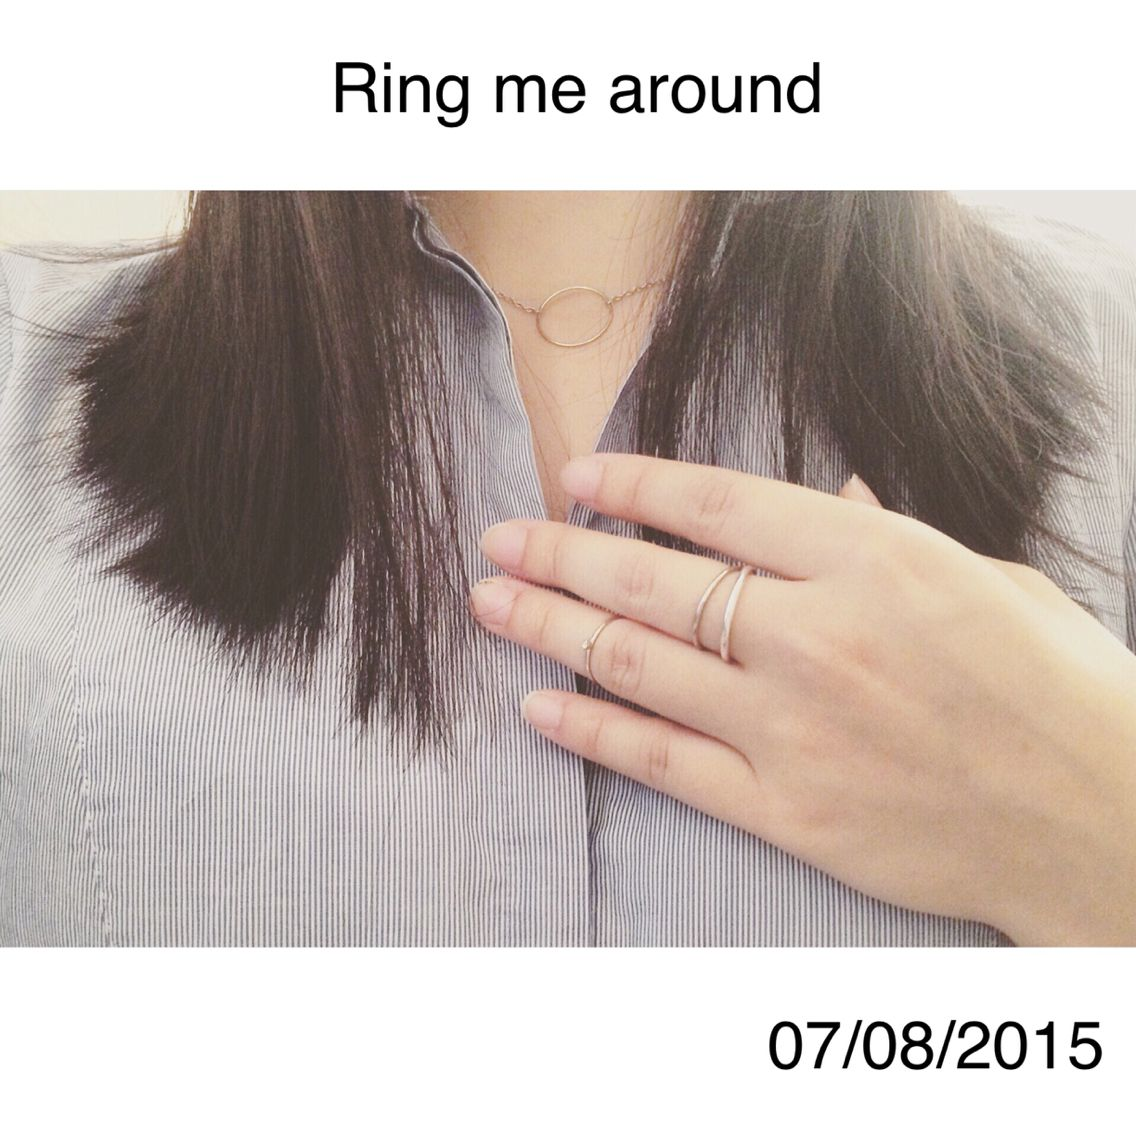 Ring me around